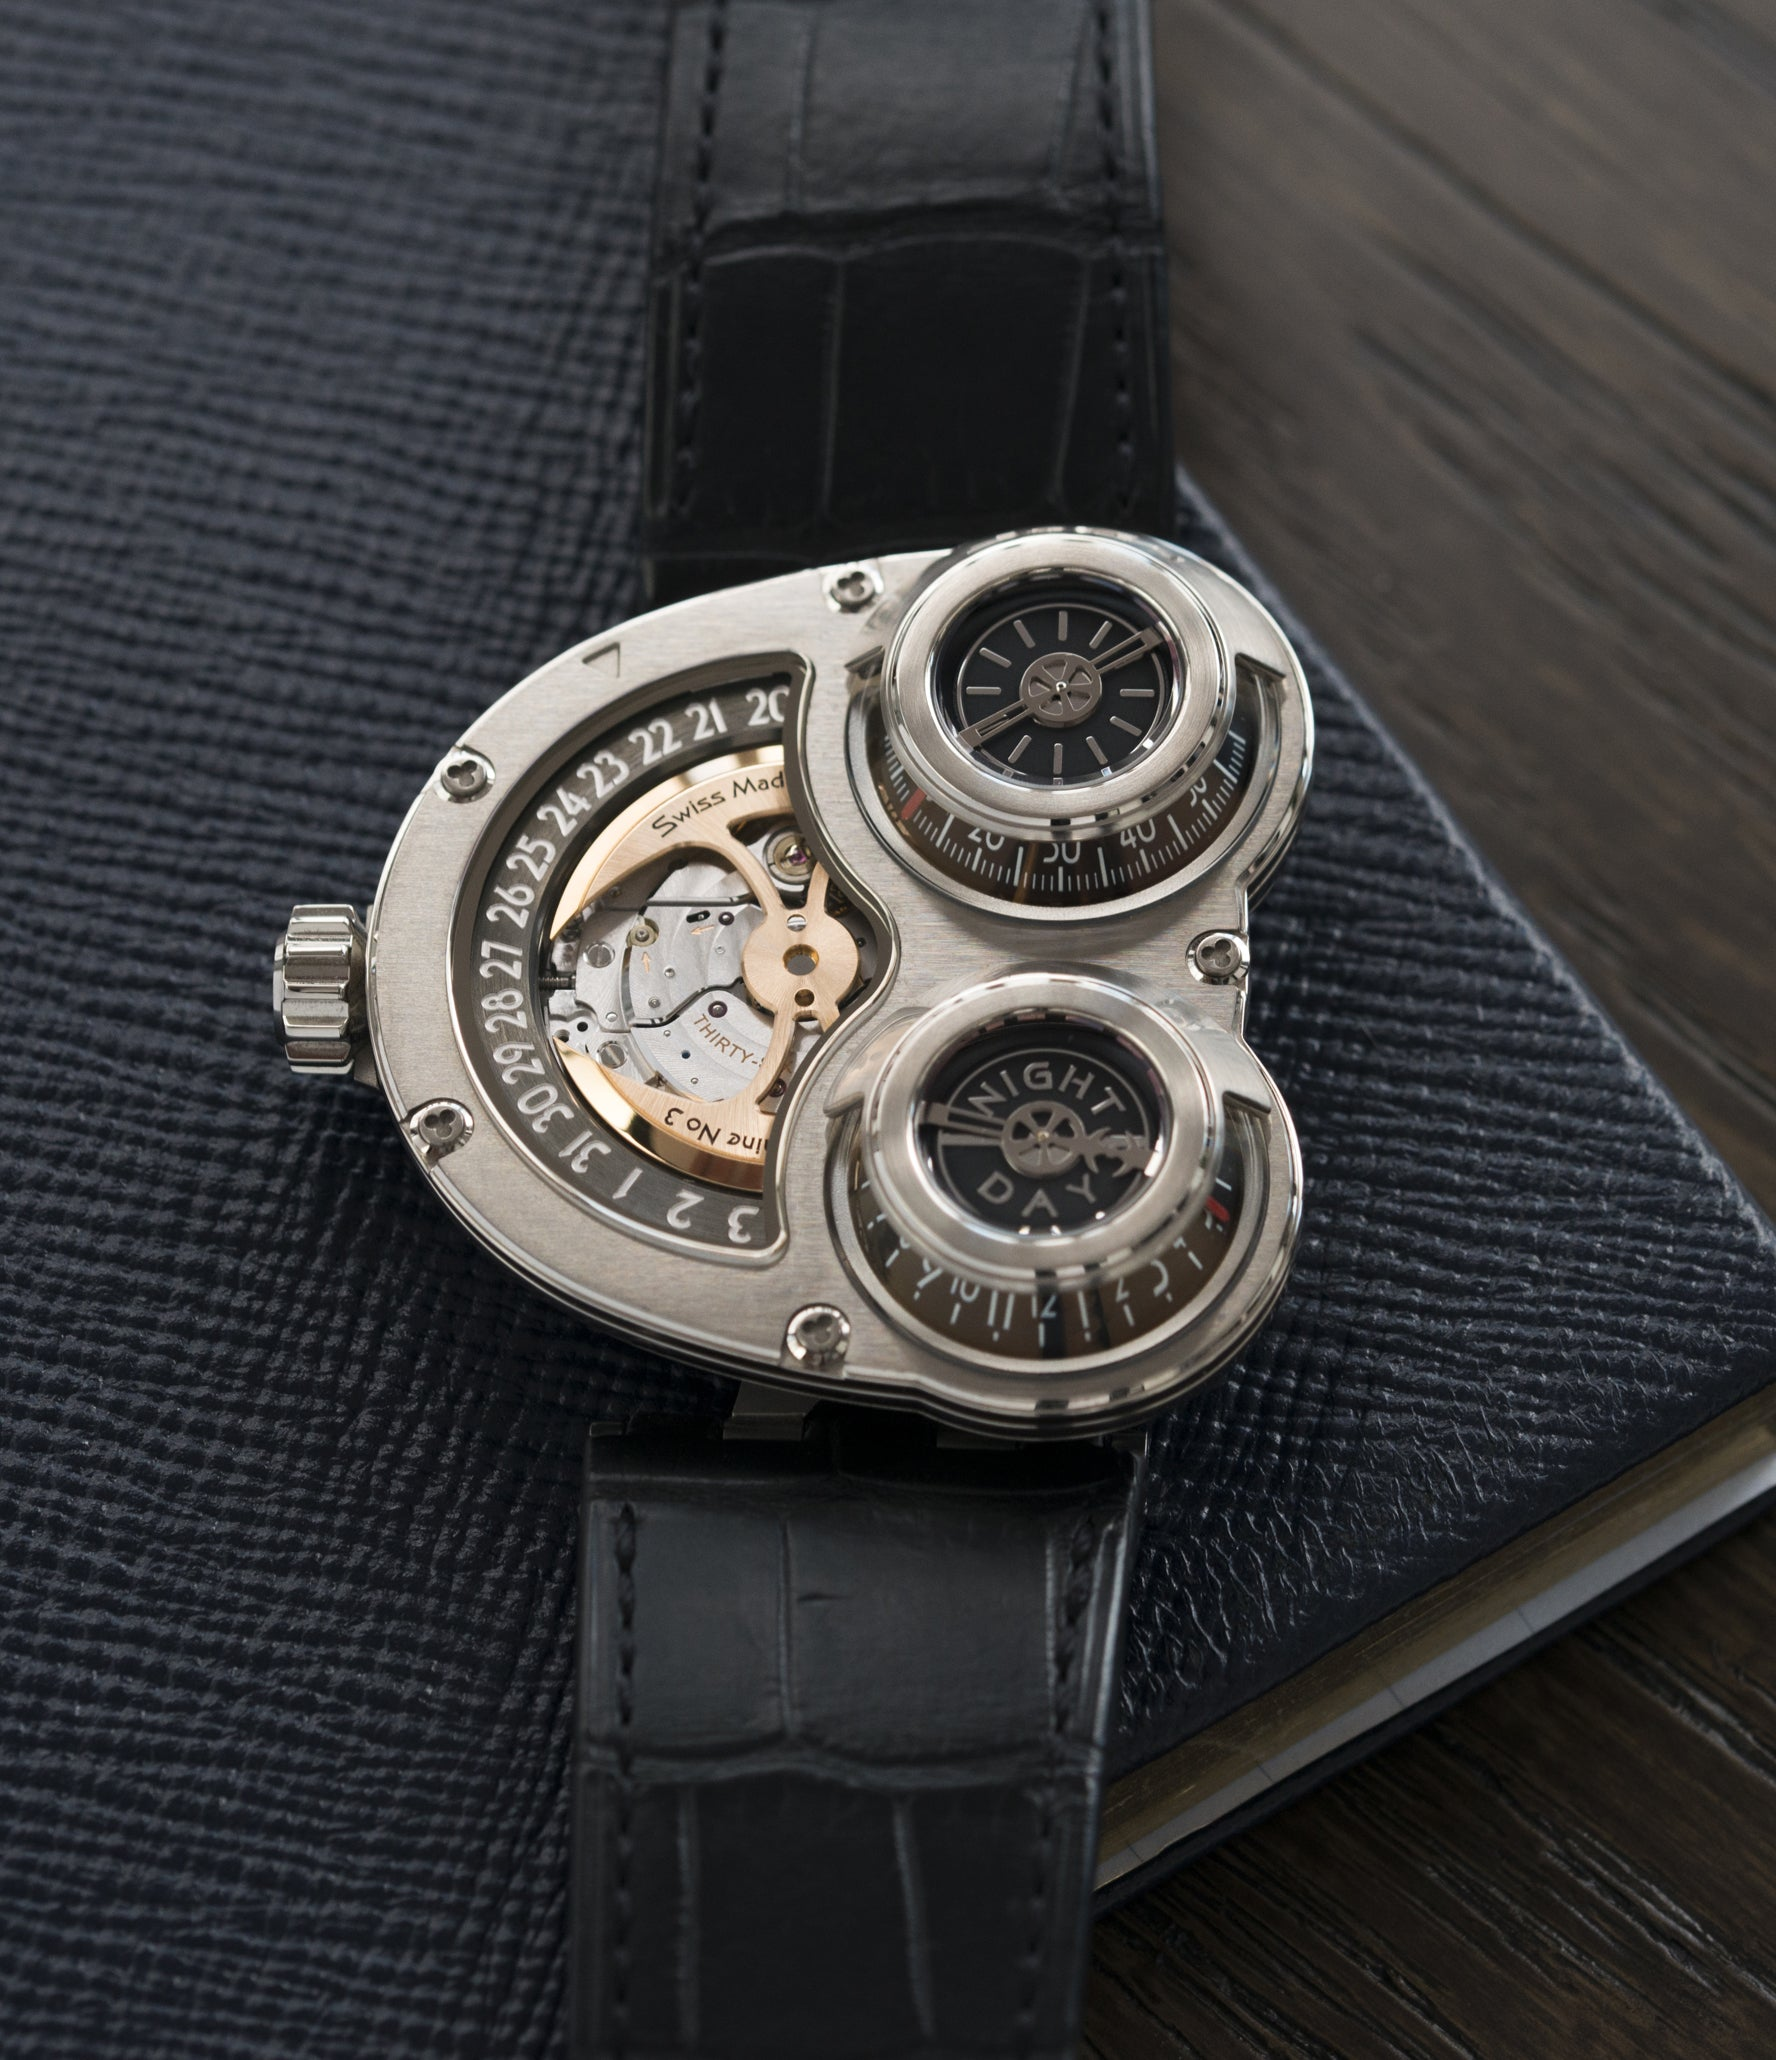 buying MB&F Sidewinder Horological Machine HM3 white gold watch by independent watchmaker Max Busser Wiederrecht for sale online at A Collected Man London UK specialist of rare watches